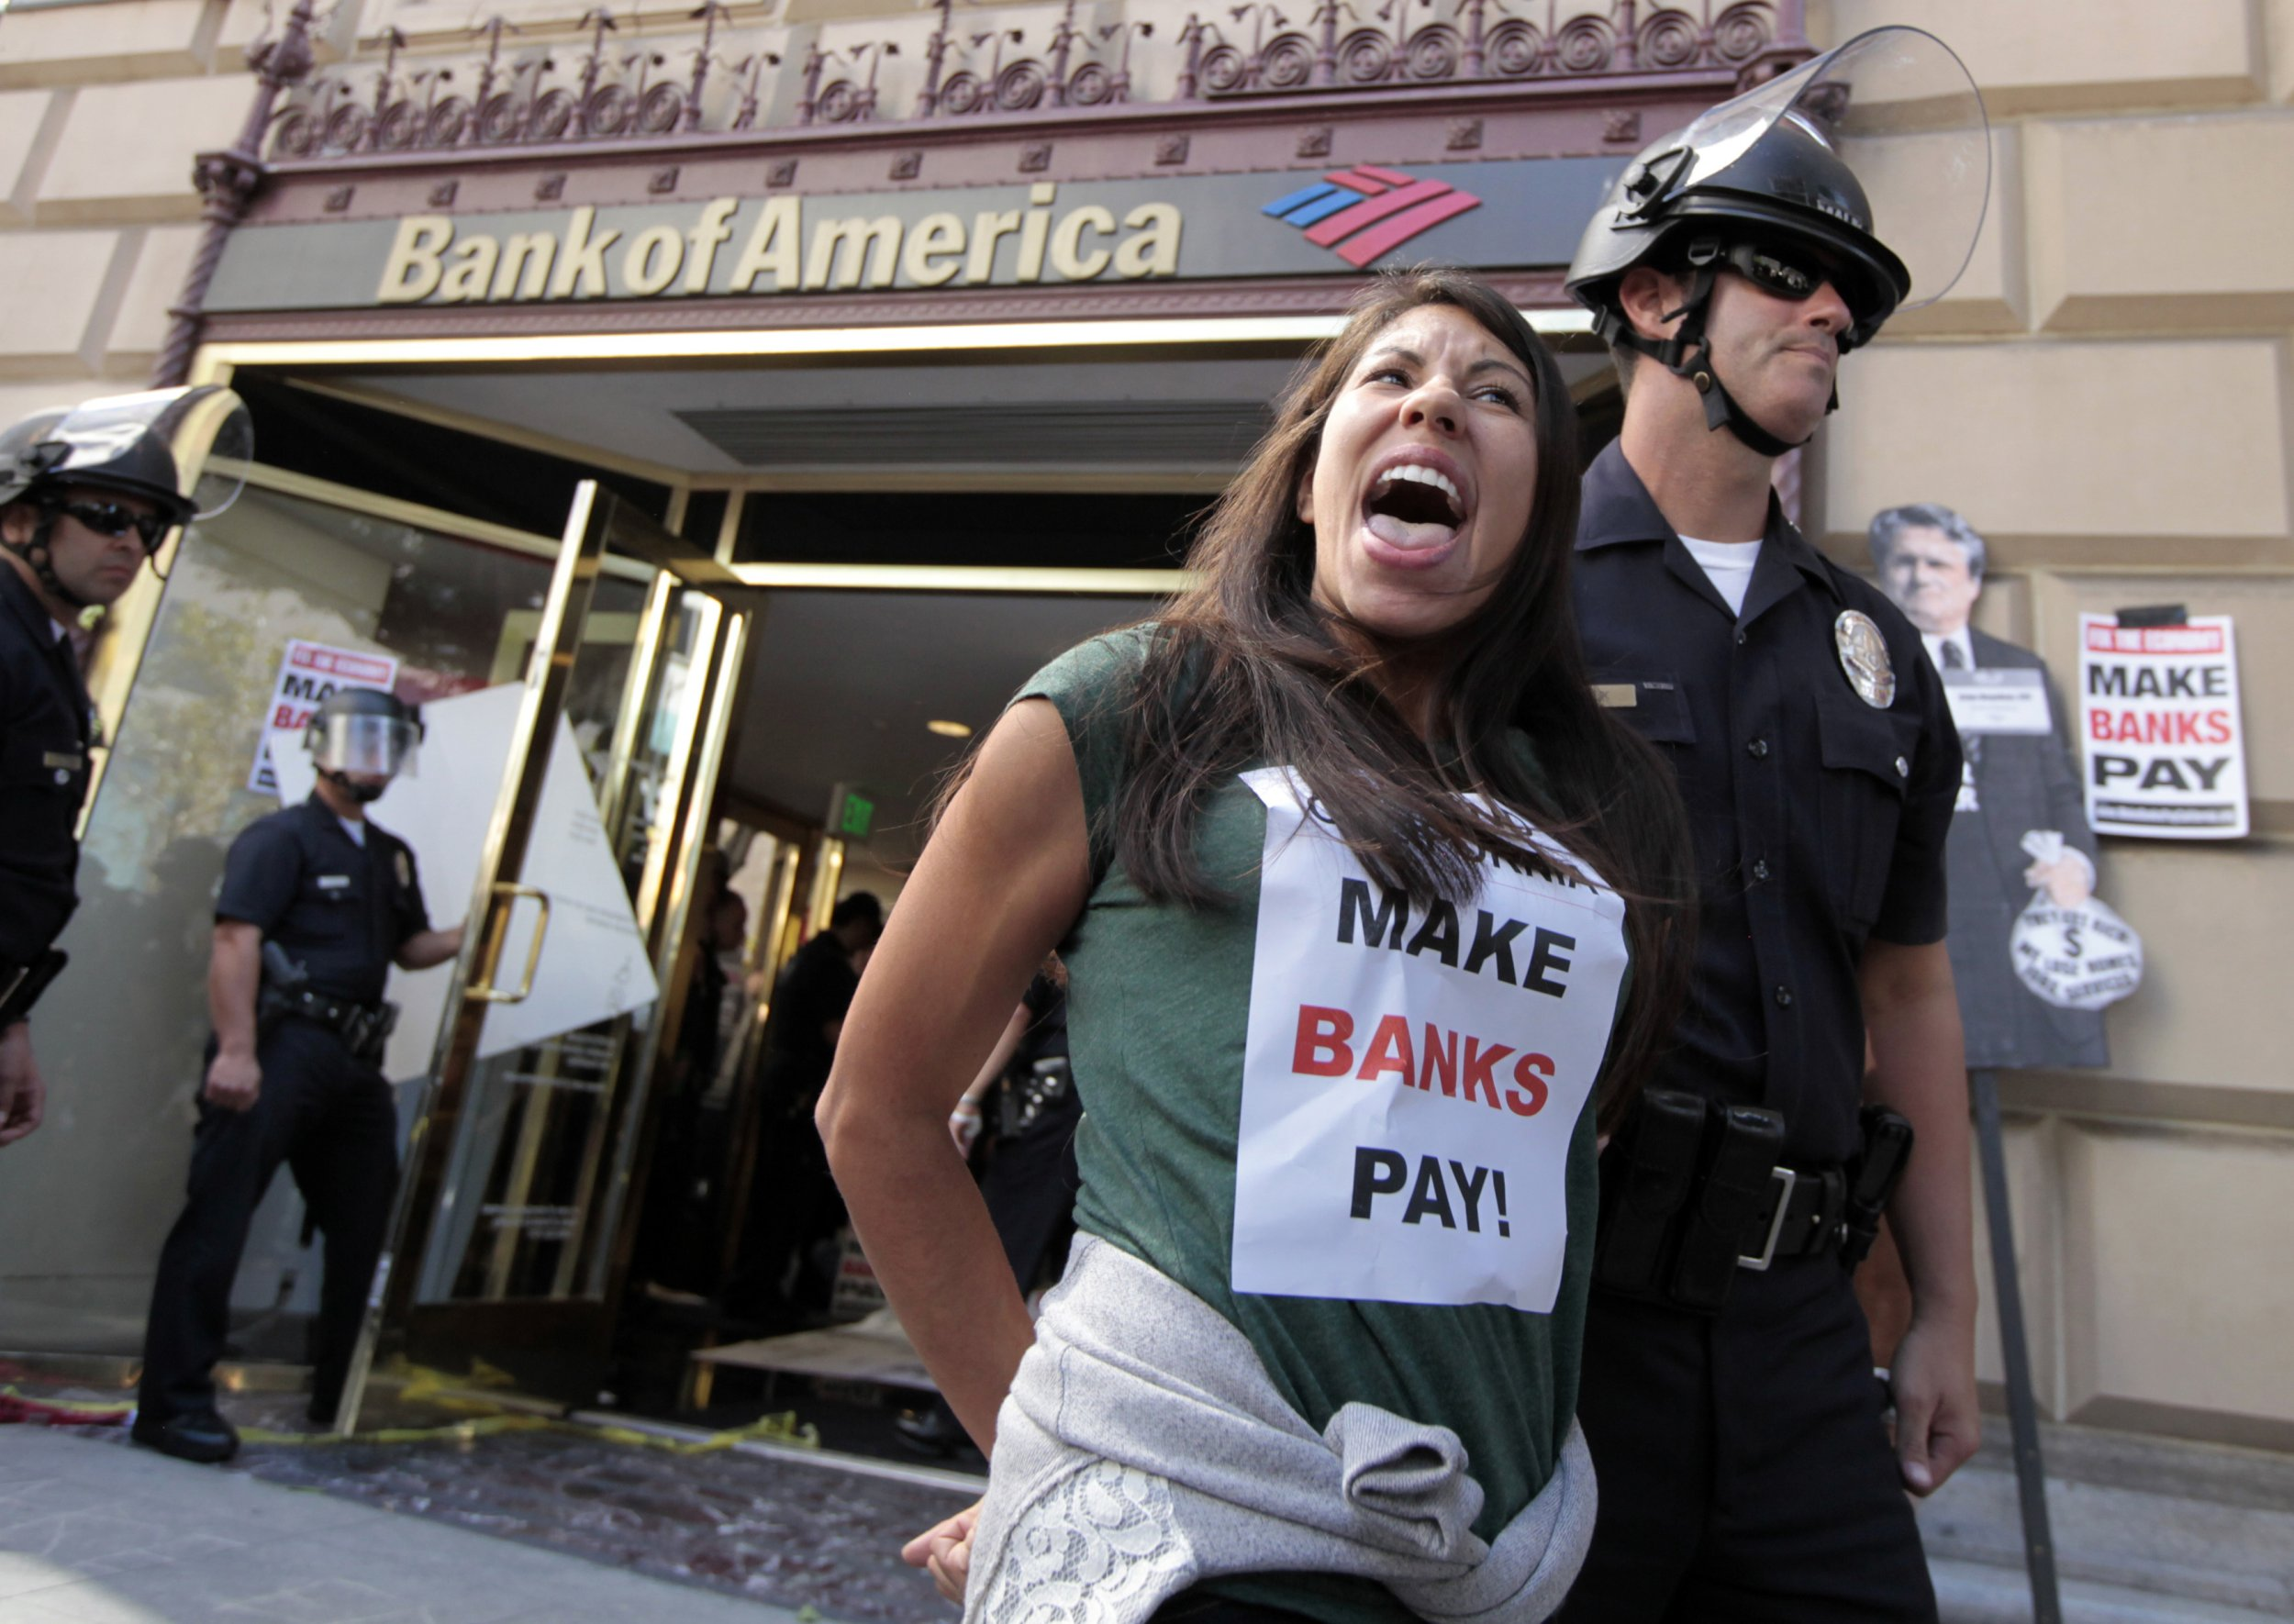 Bank of America protester